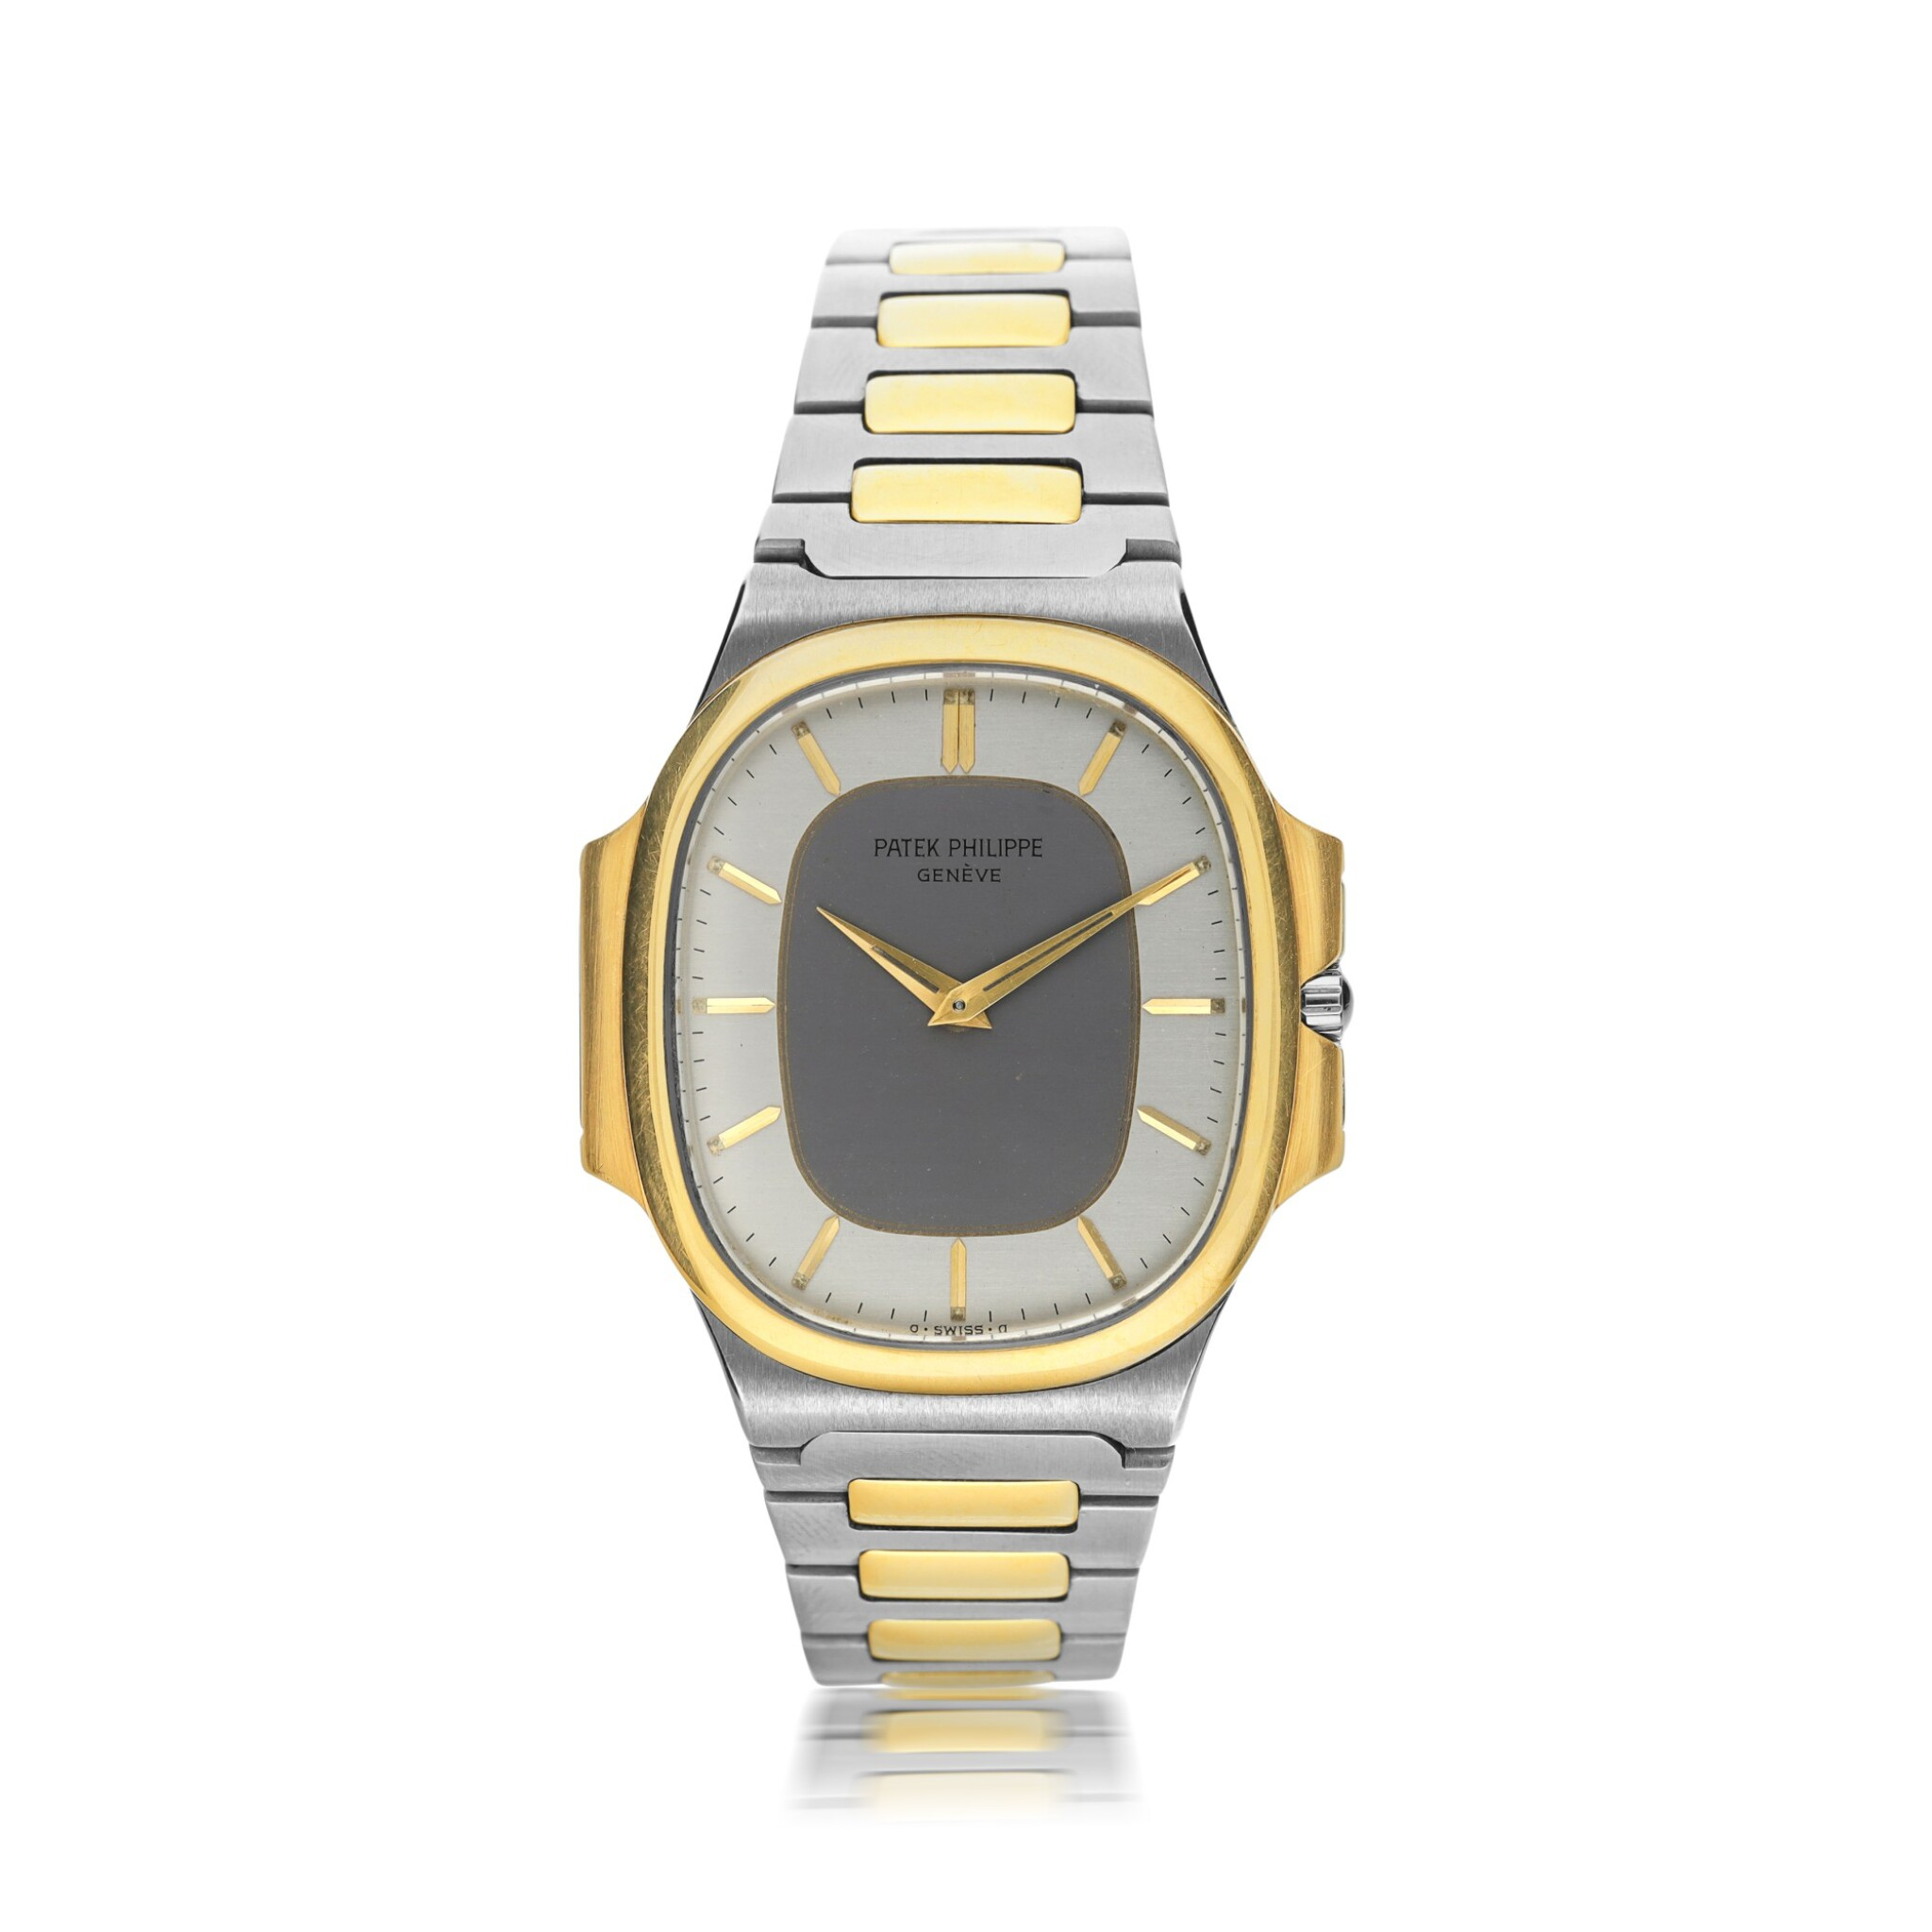 View full screen - View 1 of Lot 134. PATEK PHILIPPE      REFERENCE 3770 'NAUTELLIPSE' A YELLOW GOLD AND STAINLESS STEEL OVAL FORM BRACELET WATCH, CIRCA 1982.